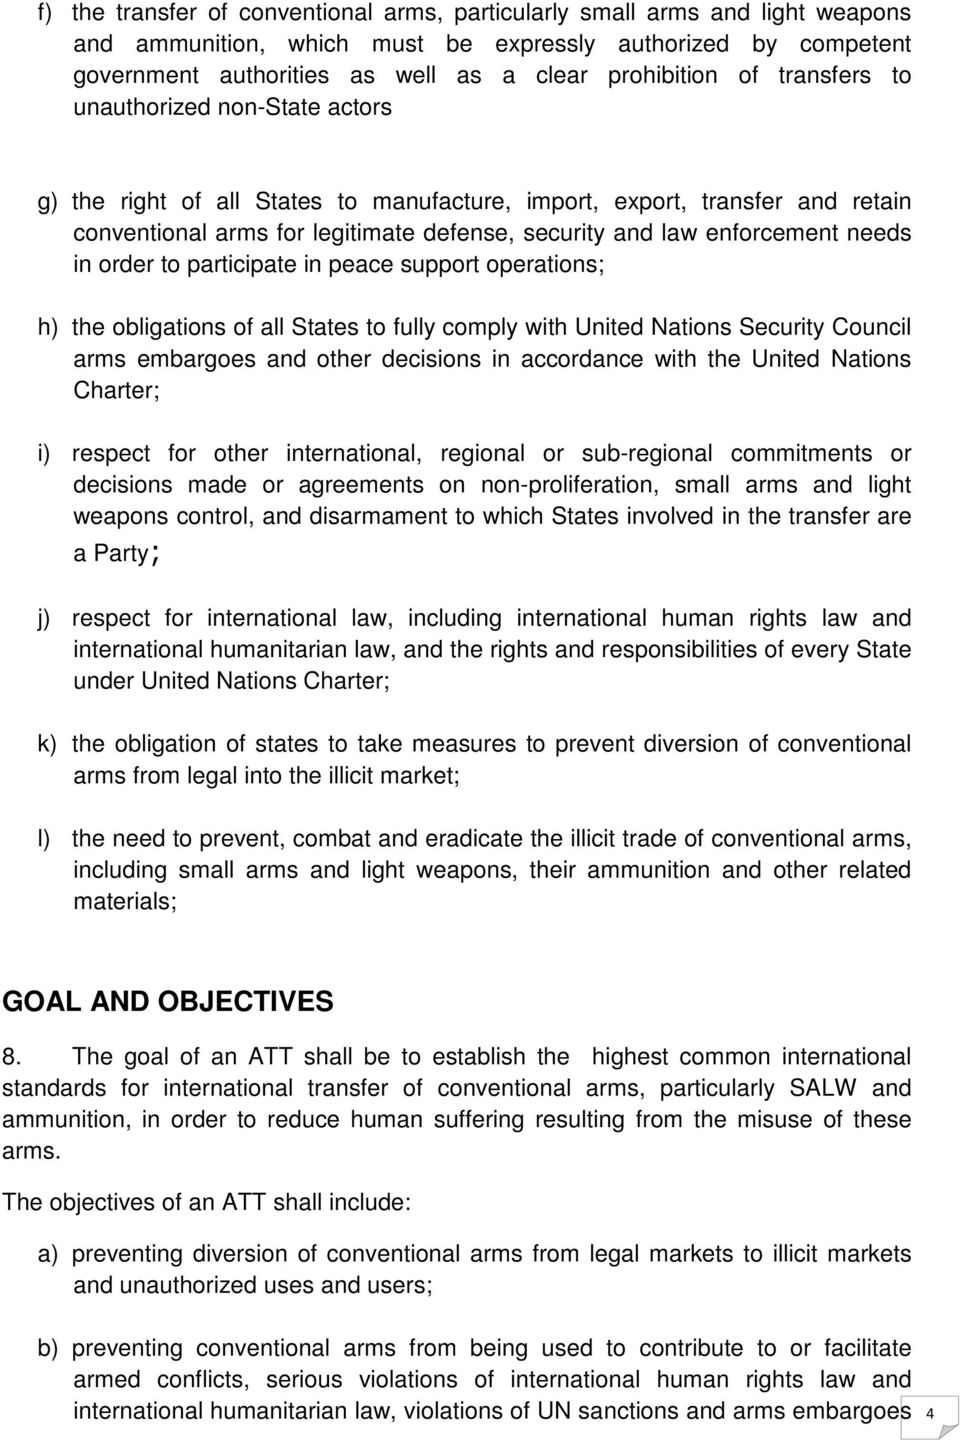 needs in order to participate in peace support operations; h) the obligations of all States to fully comply with United Nations Security Council arms embargoes and other decisions in accordance with